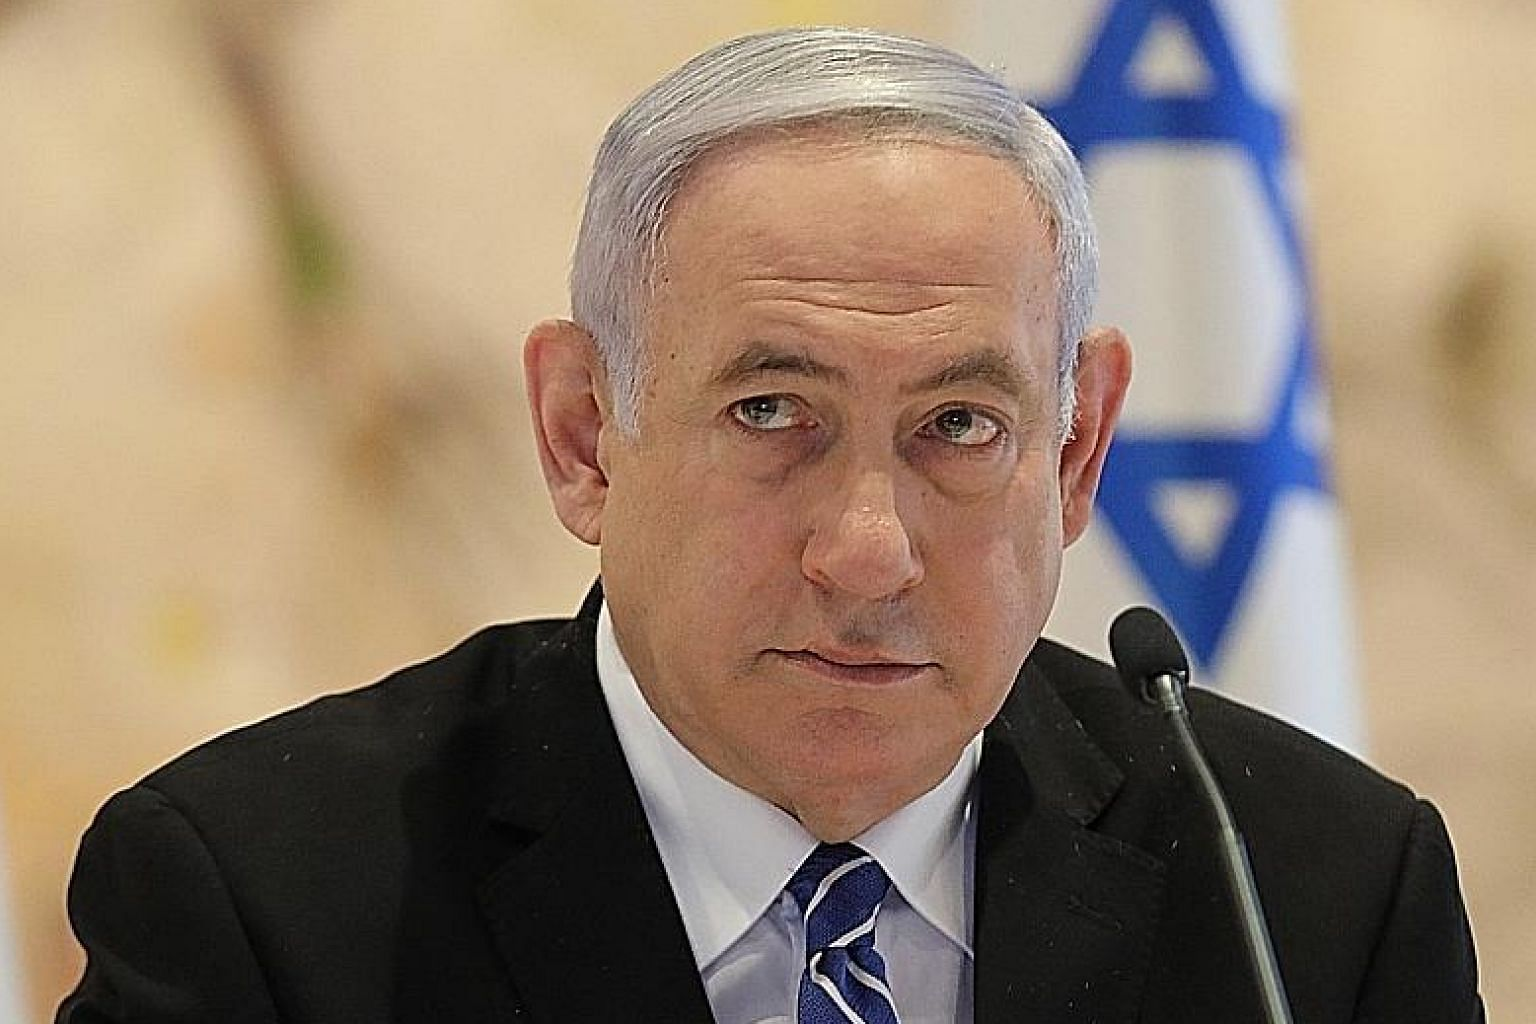 Under Israeli law, Benjamin Netanyahu, a sitting prime minister, need not resign when facing charges.